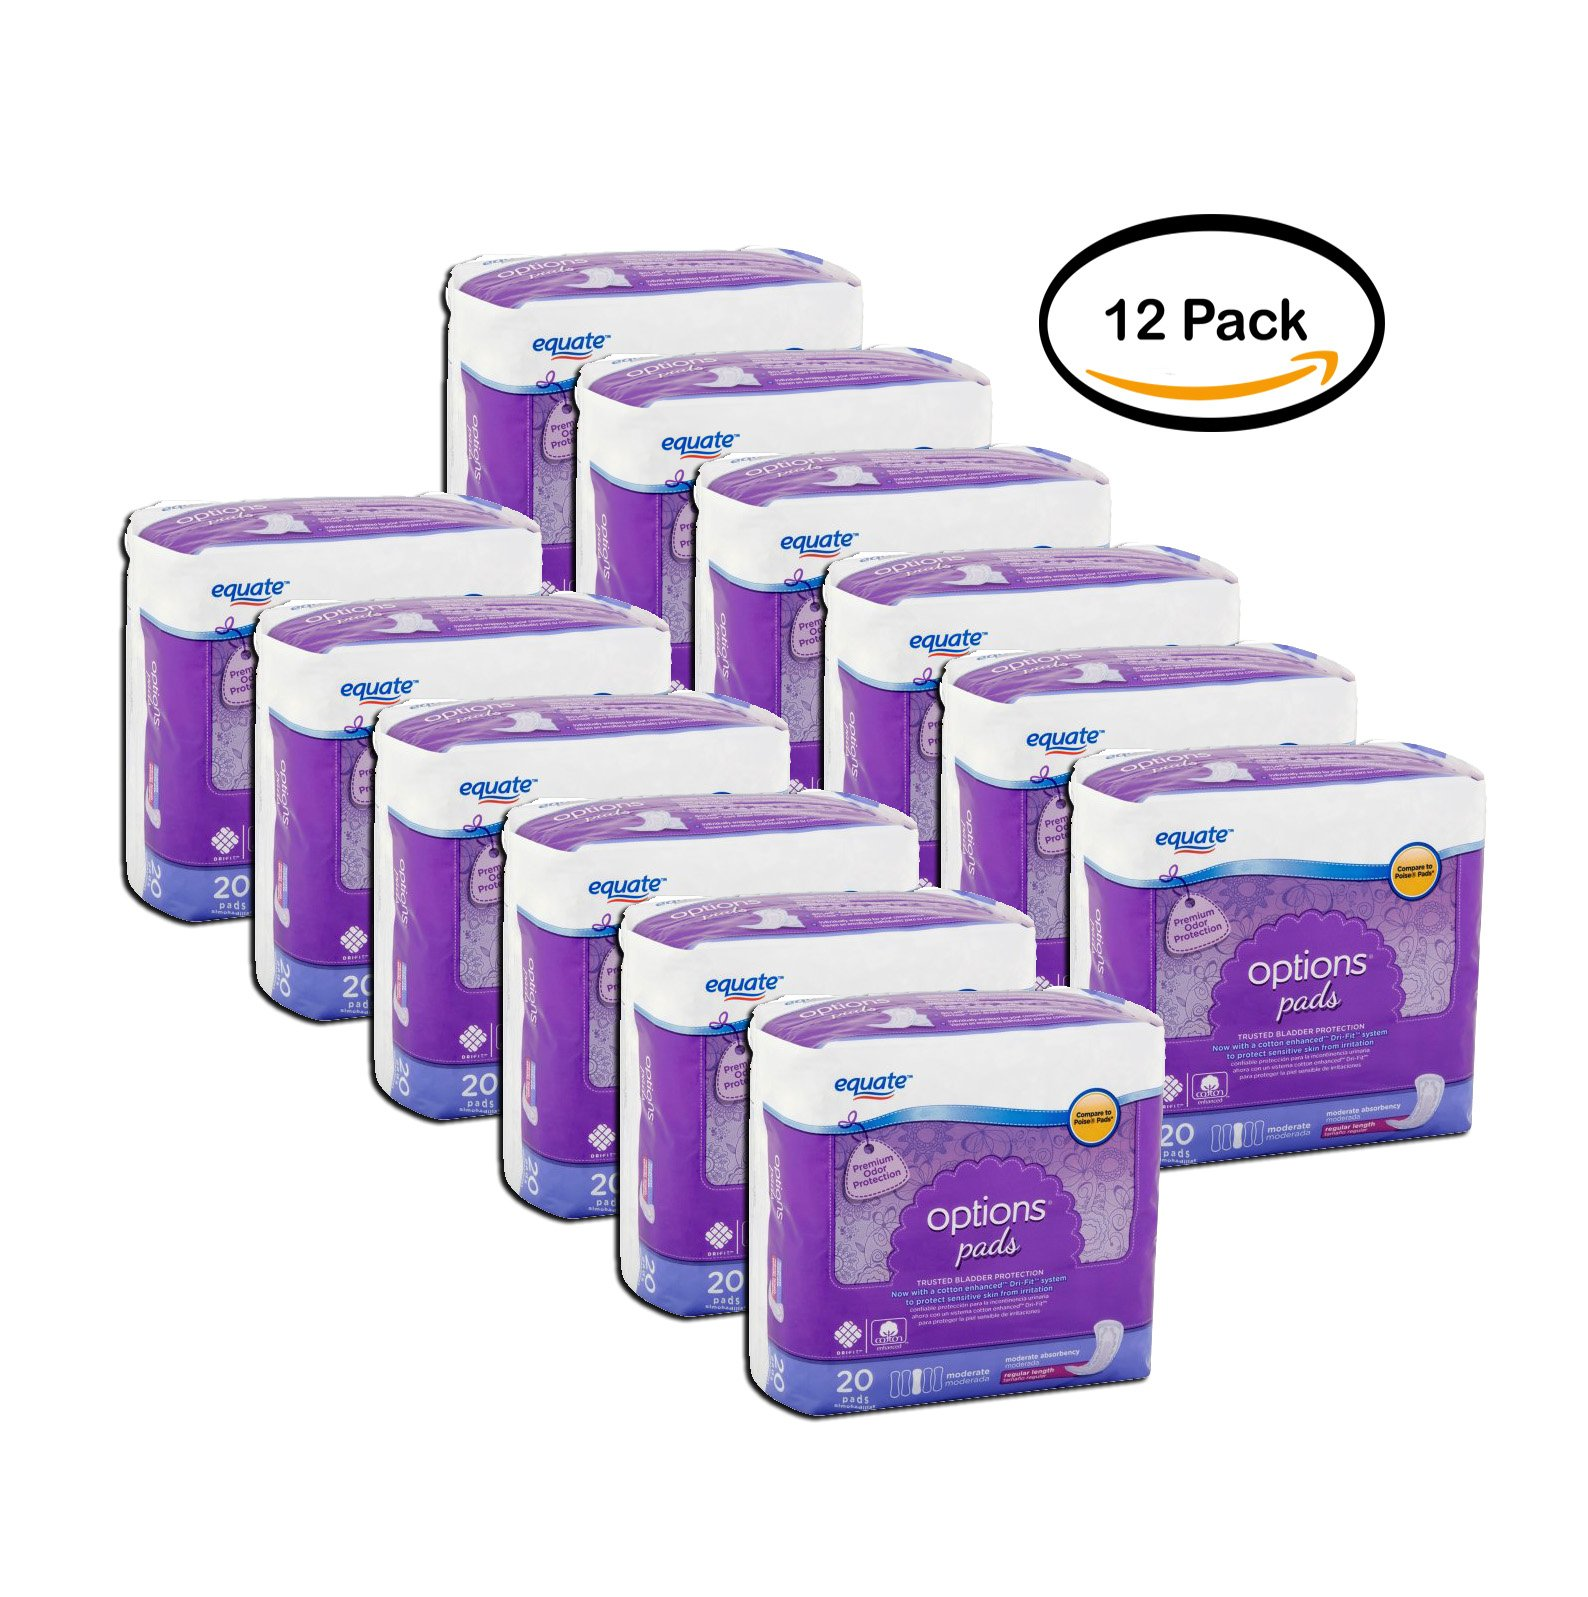 PACK OF 12 - Equate Options Pads, Moderate, 20 ct